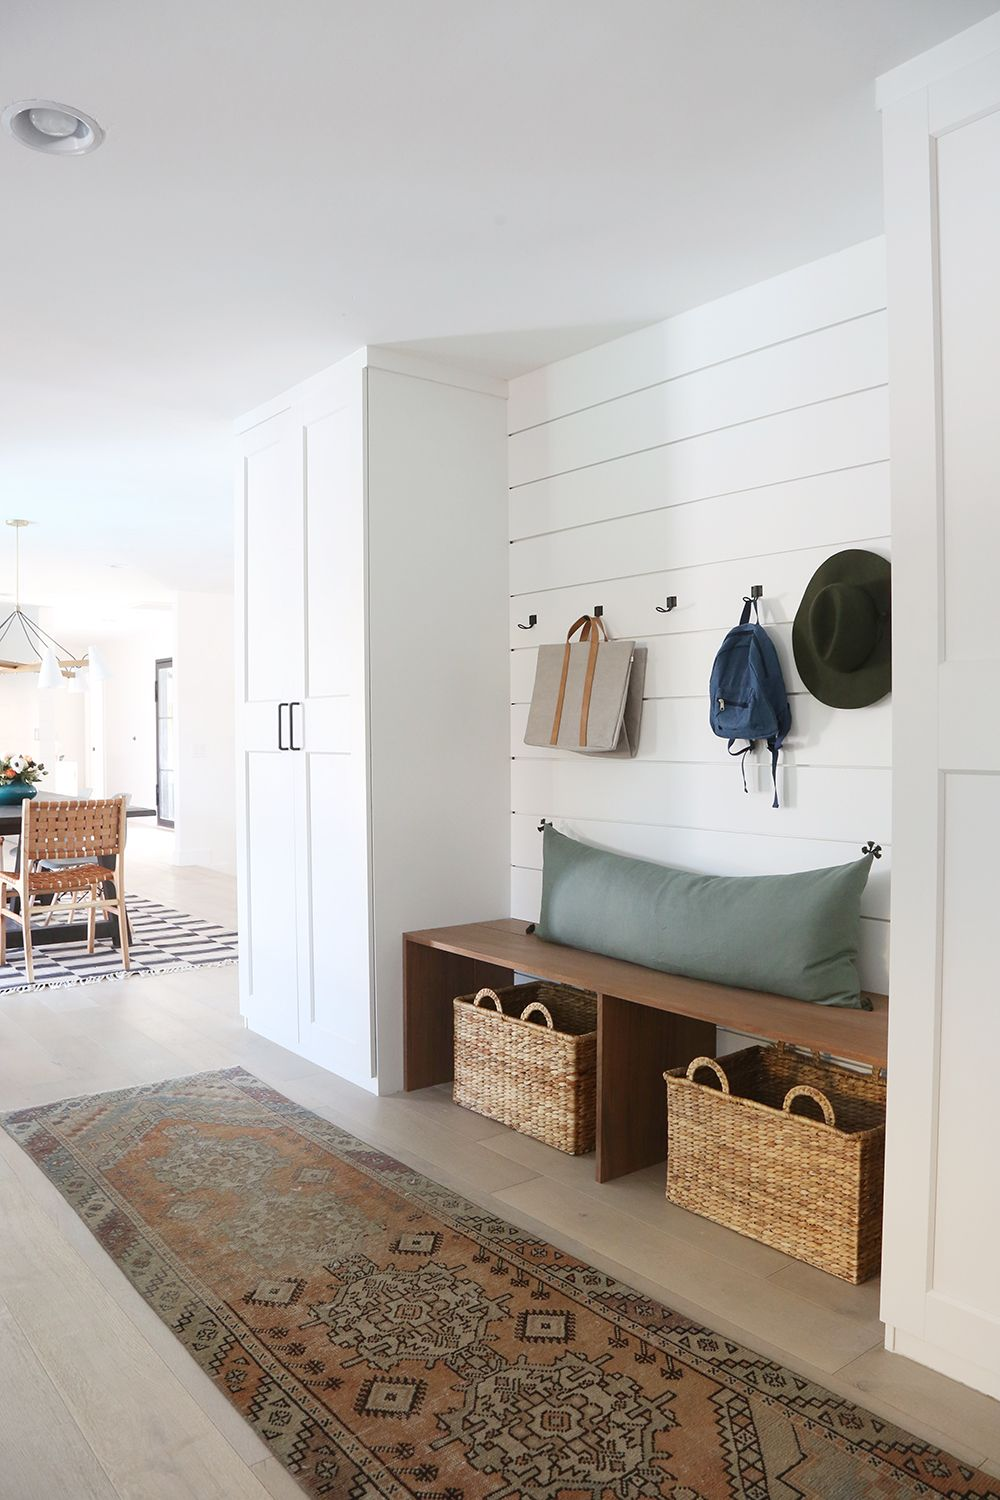 Rabais Salle De Bain Ikea ~ mudroom using ikea pax wardrobes on little green notebook